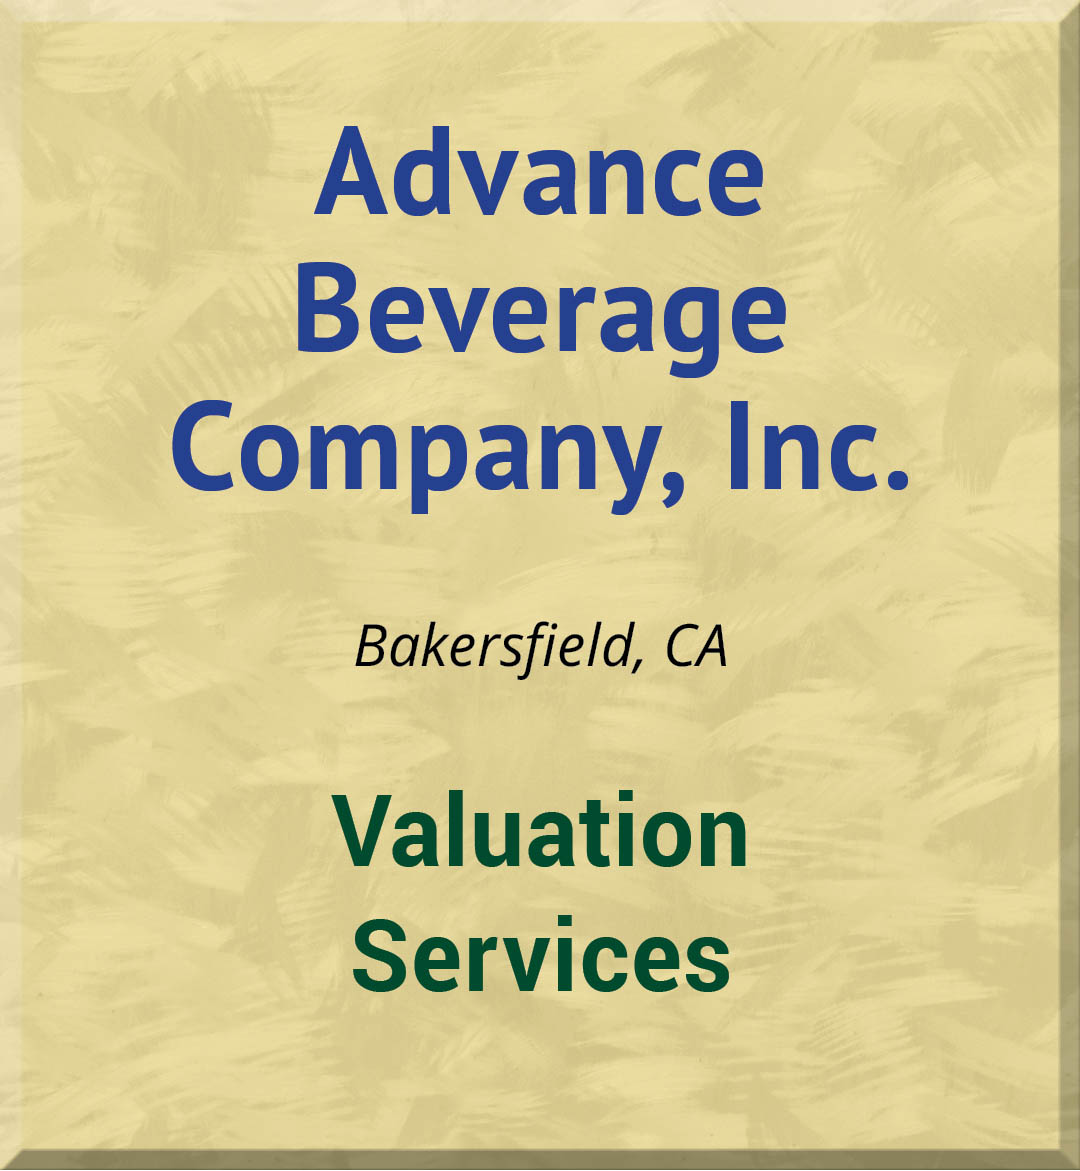 Advance Beverage Company, Inc.